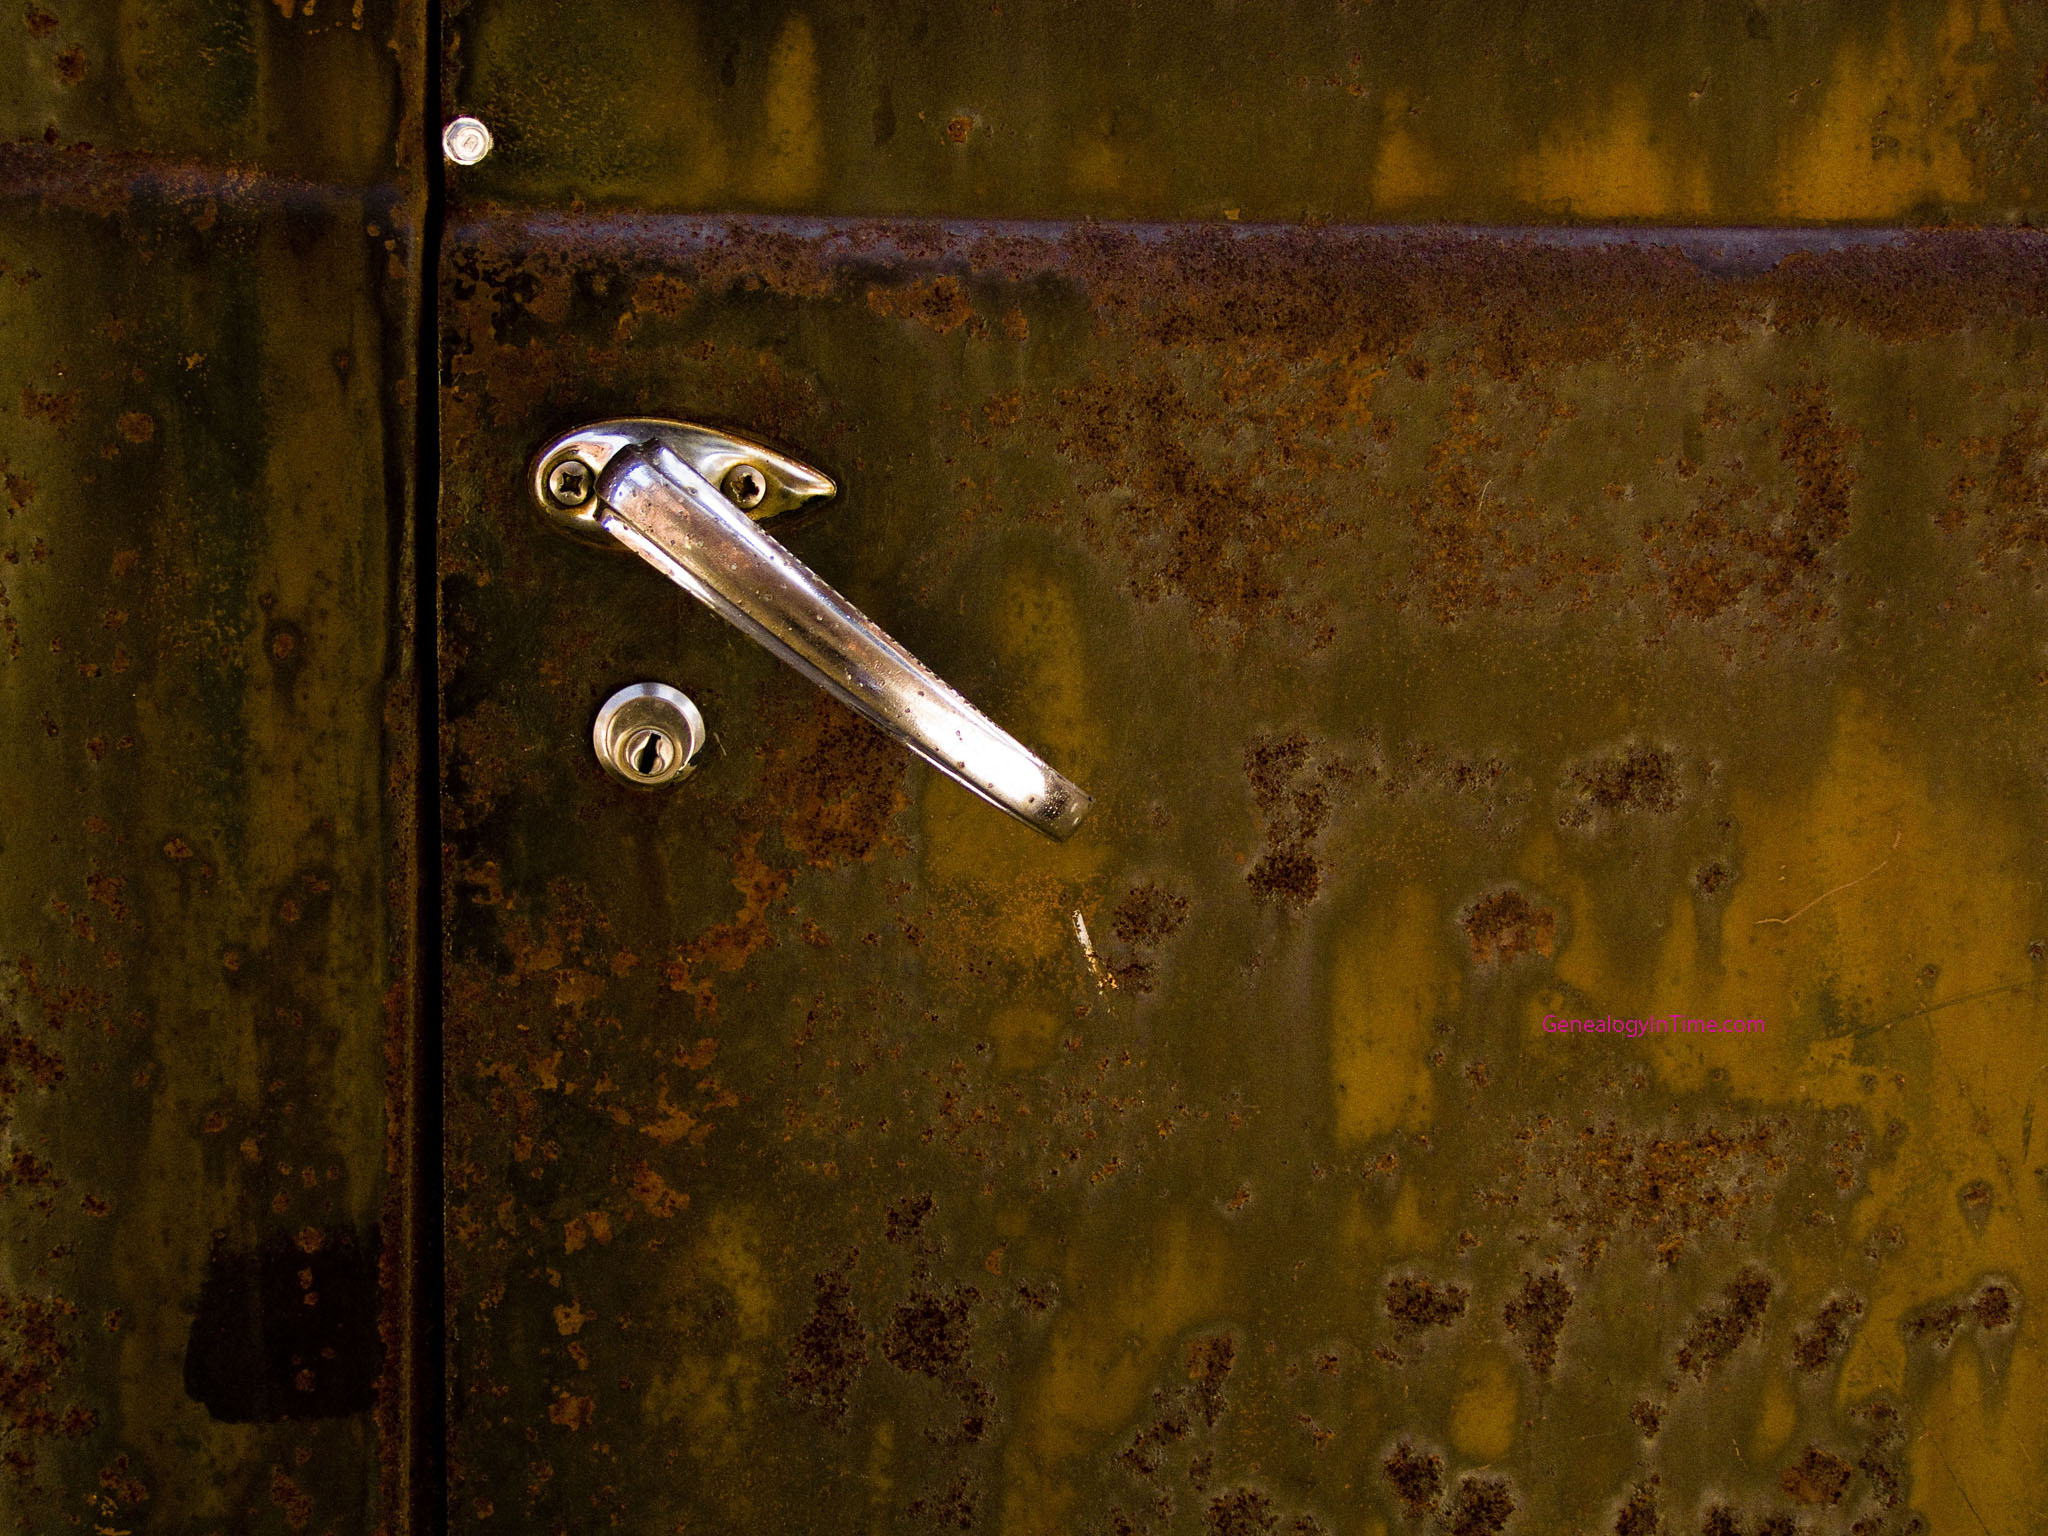 1940s Dodge truch rusted door & Free Rust Images